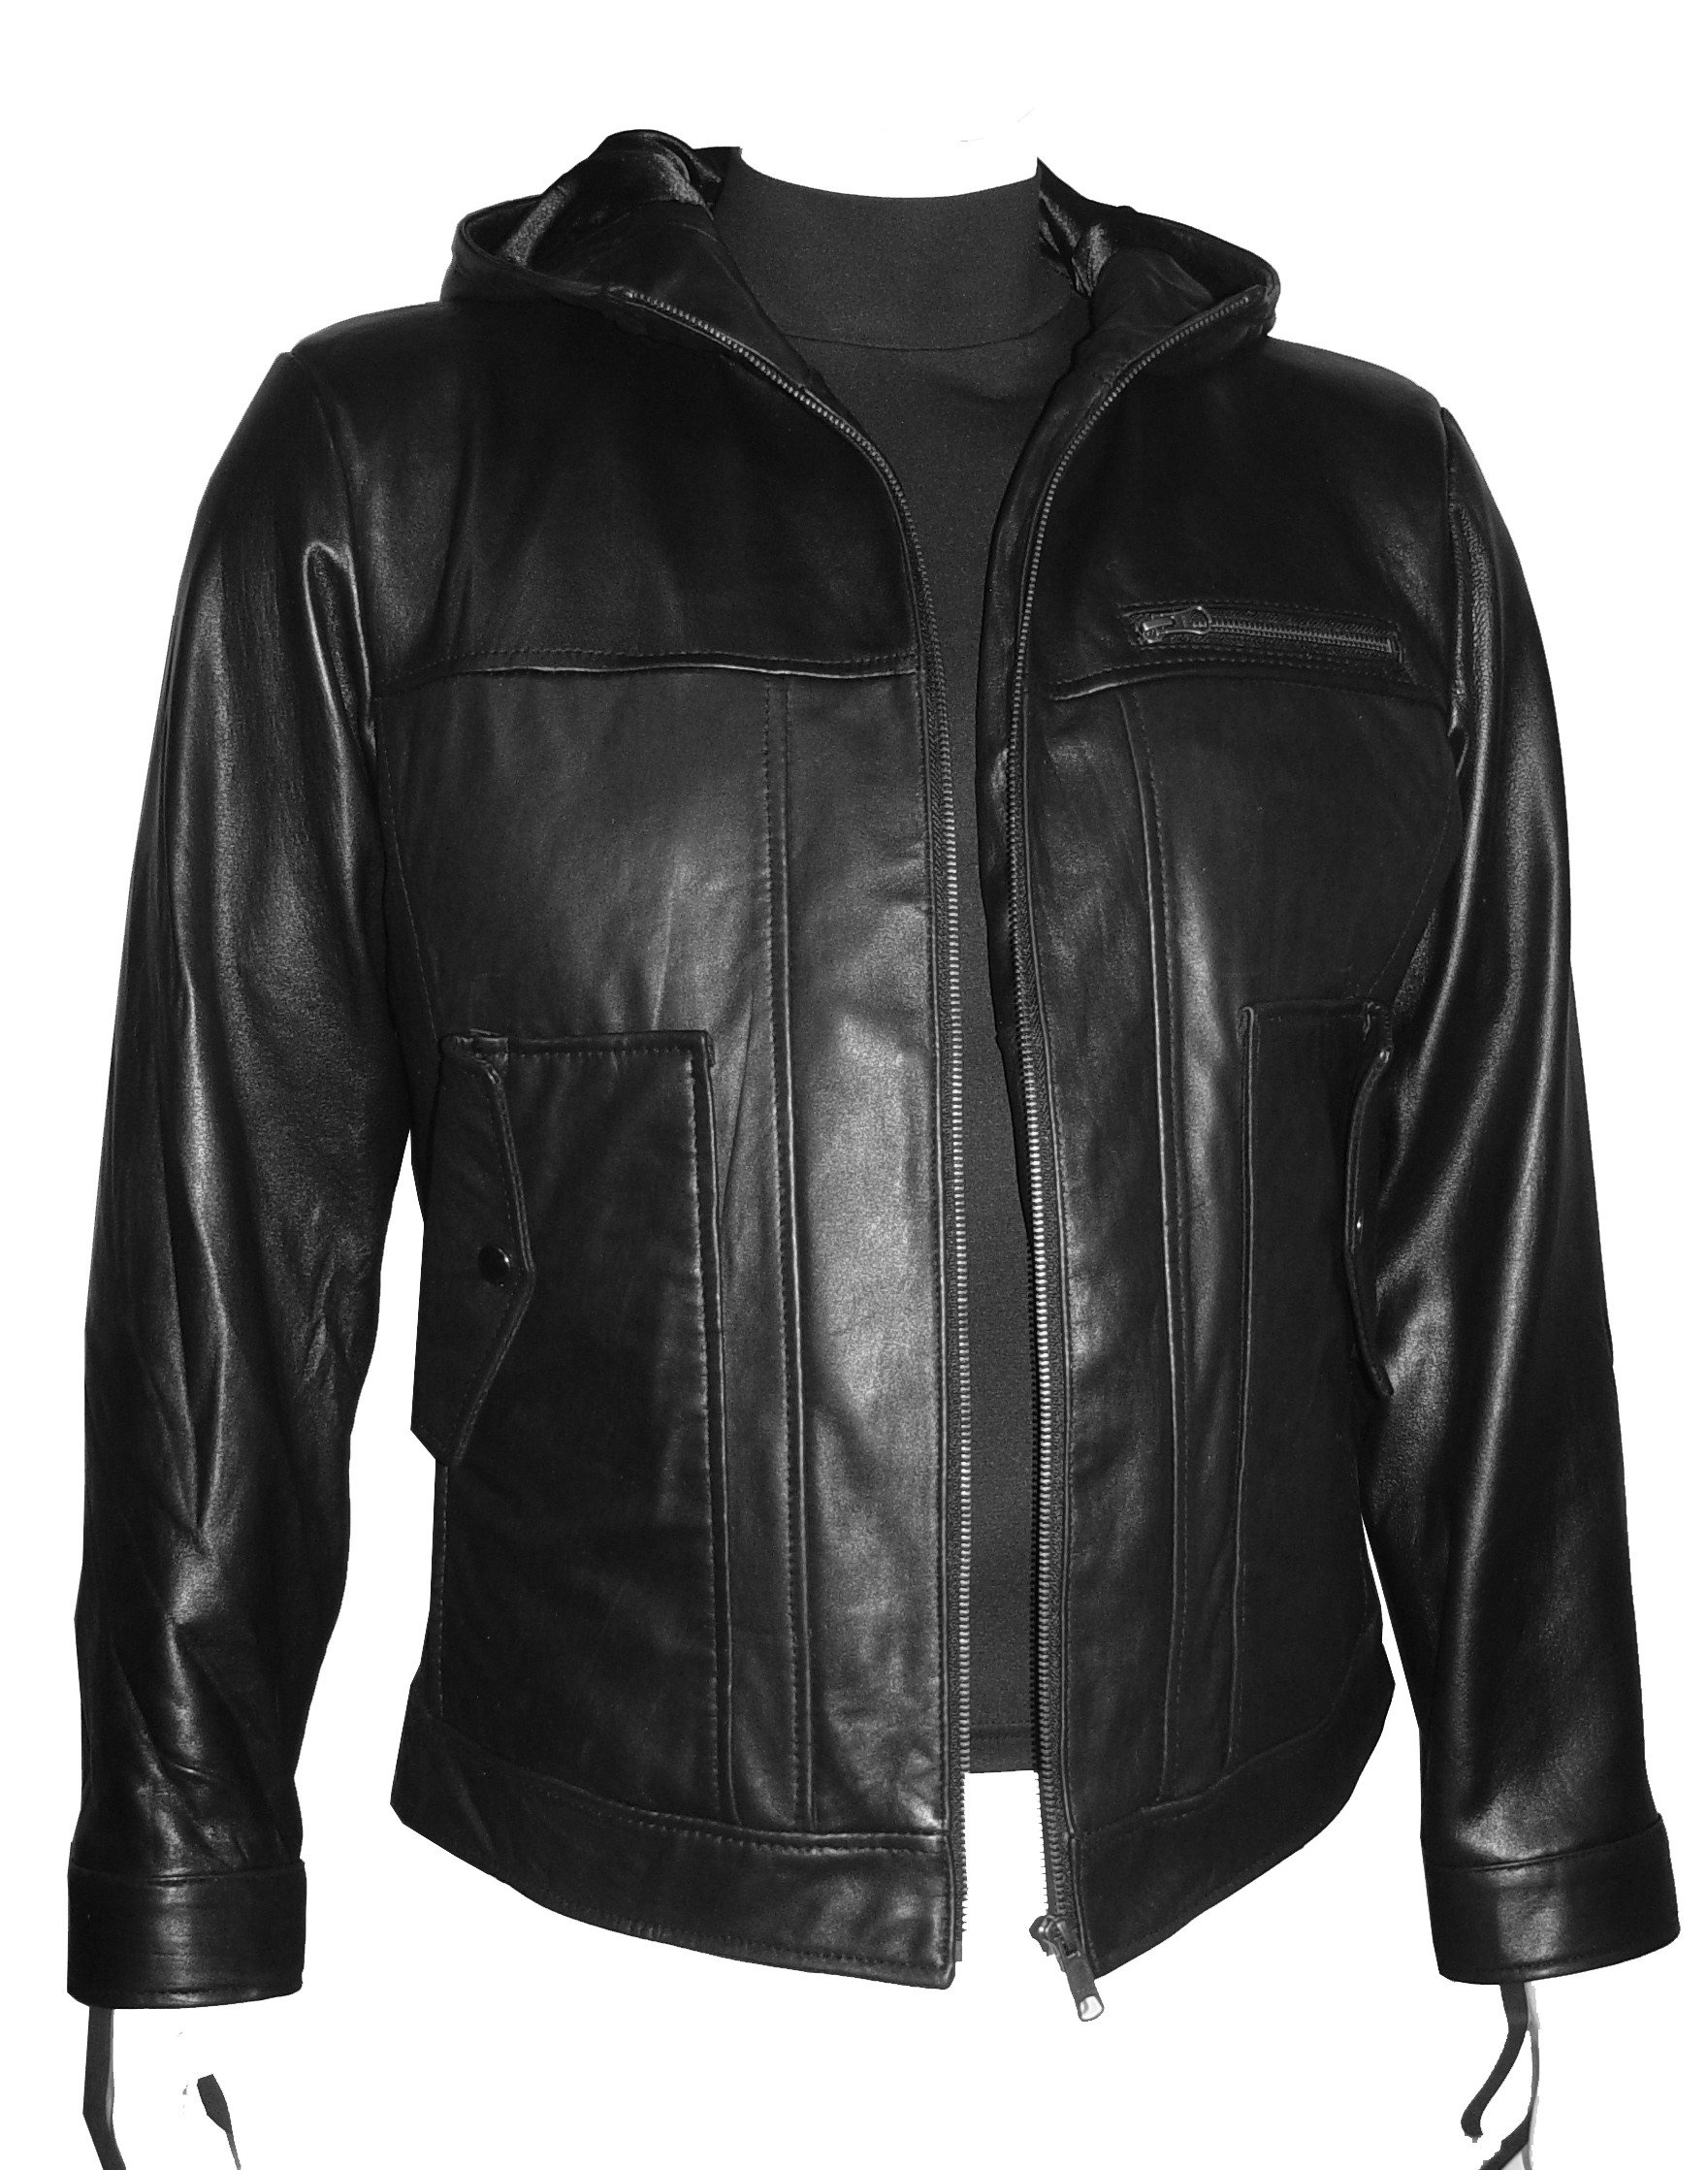 Nettailor Tall Big Man 1085 BIG TALL Size 4 Season Leather Jacket Zip Out